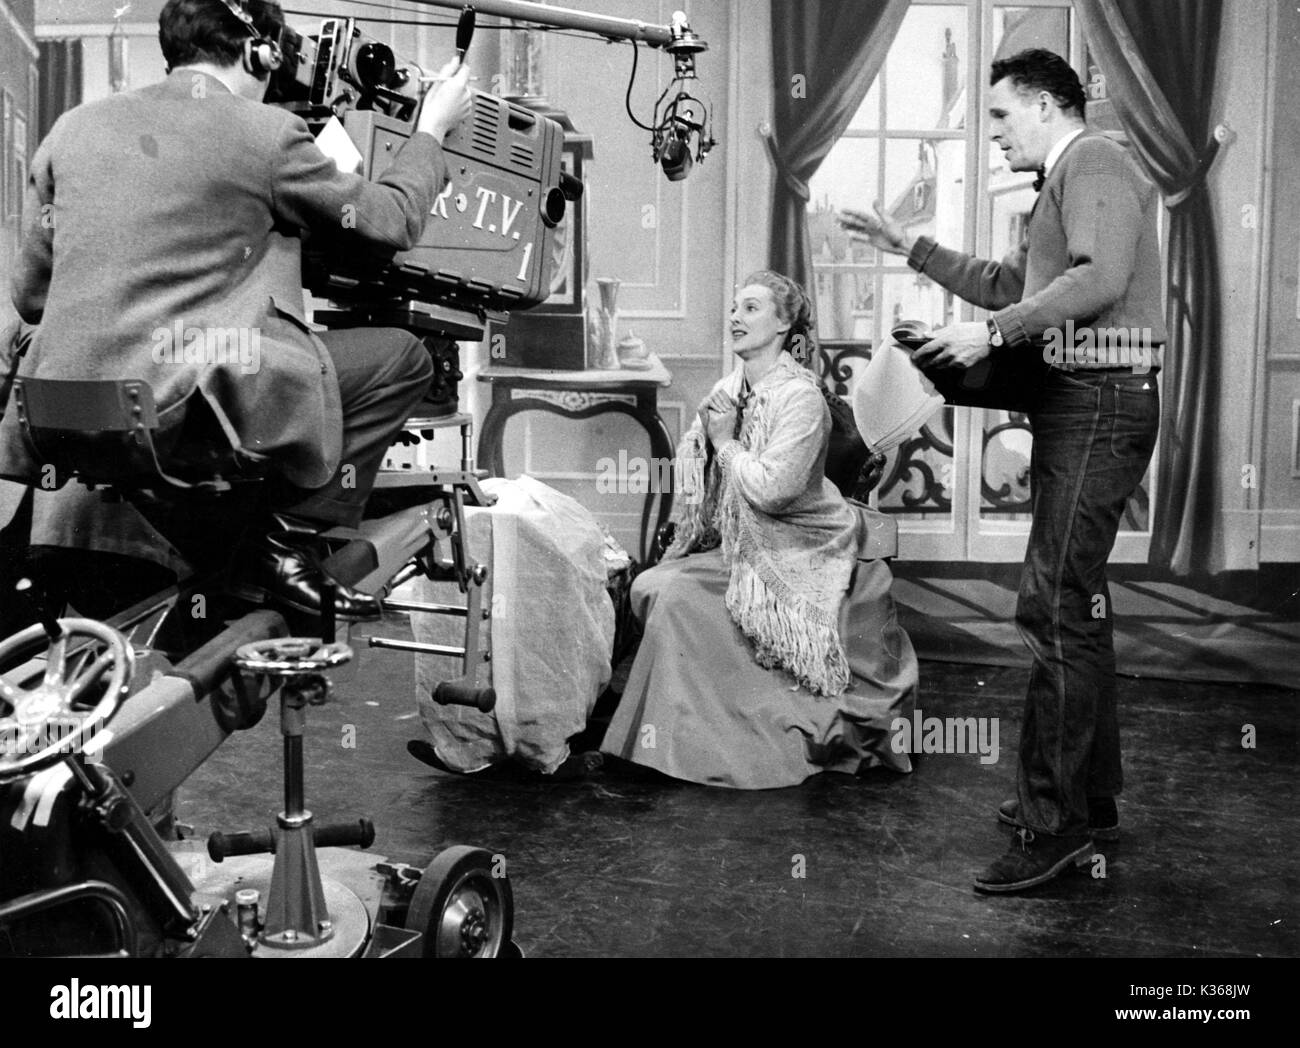 EAST LYNNE ASSOCIATED REDIFFUSION CYRIL BUTCHER directing HELEN SHINGLER - Stock Image